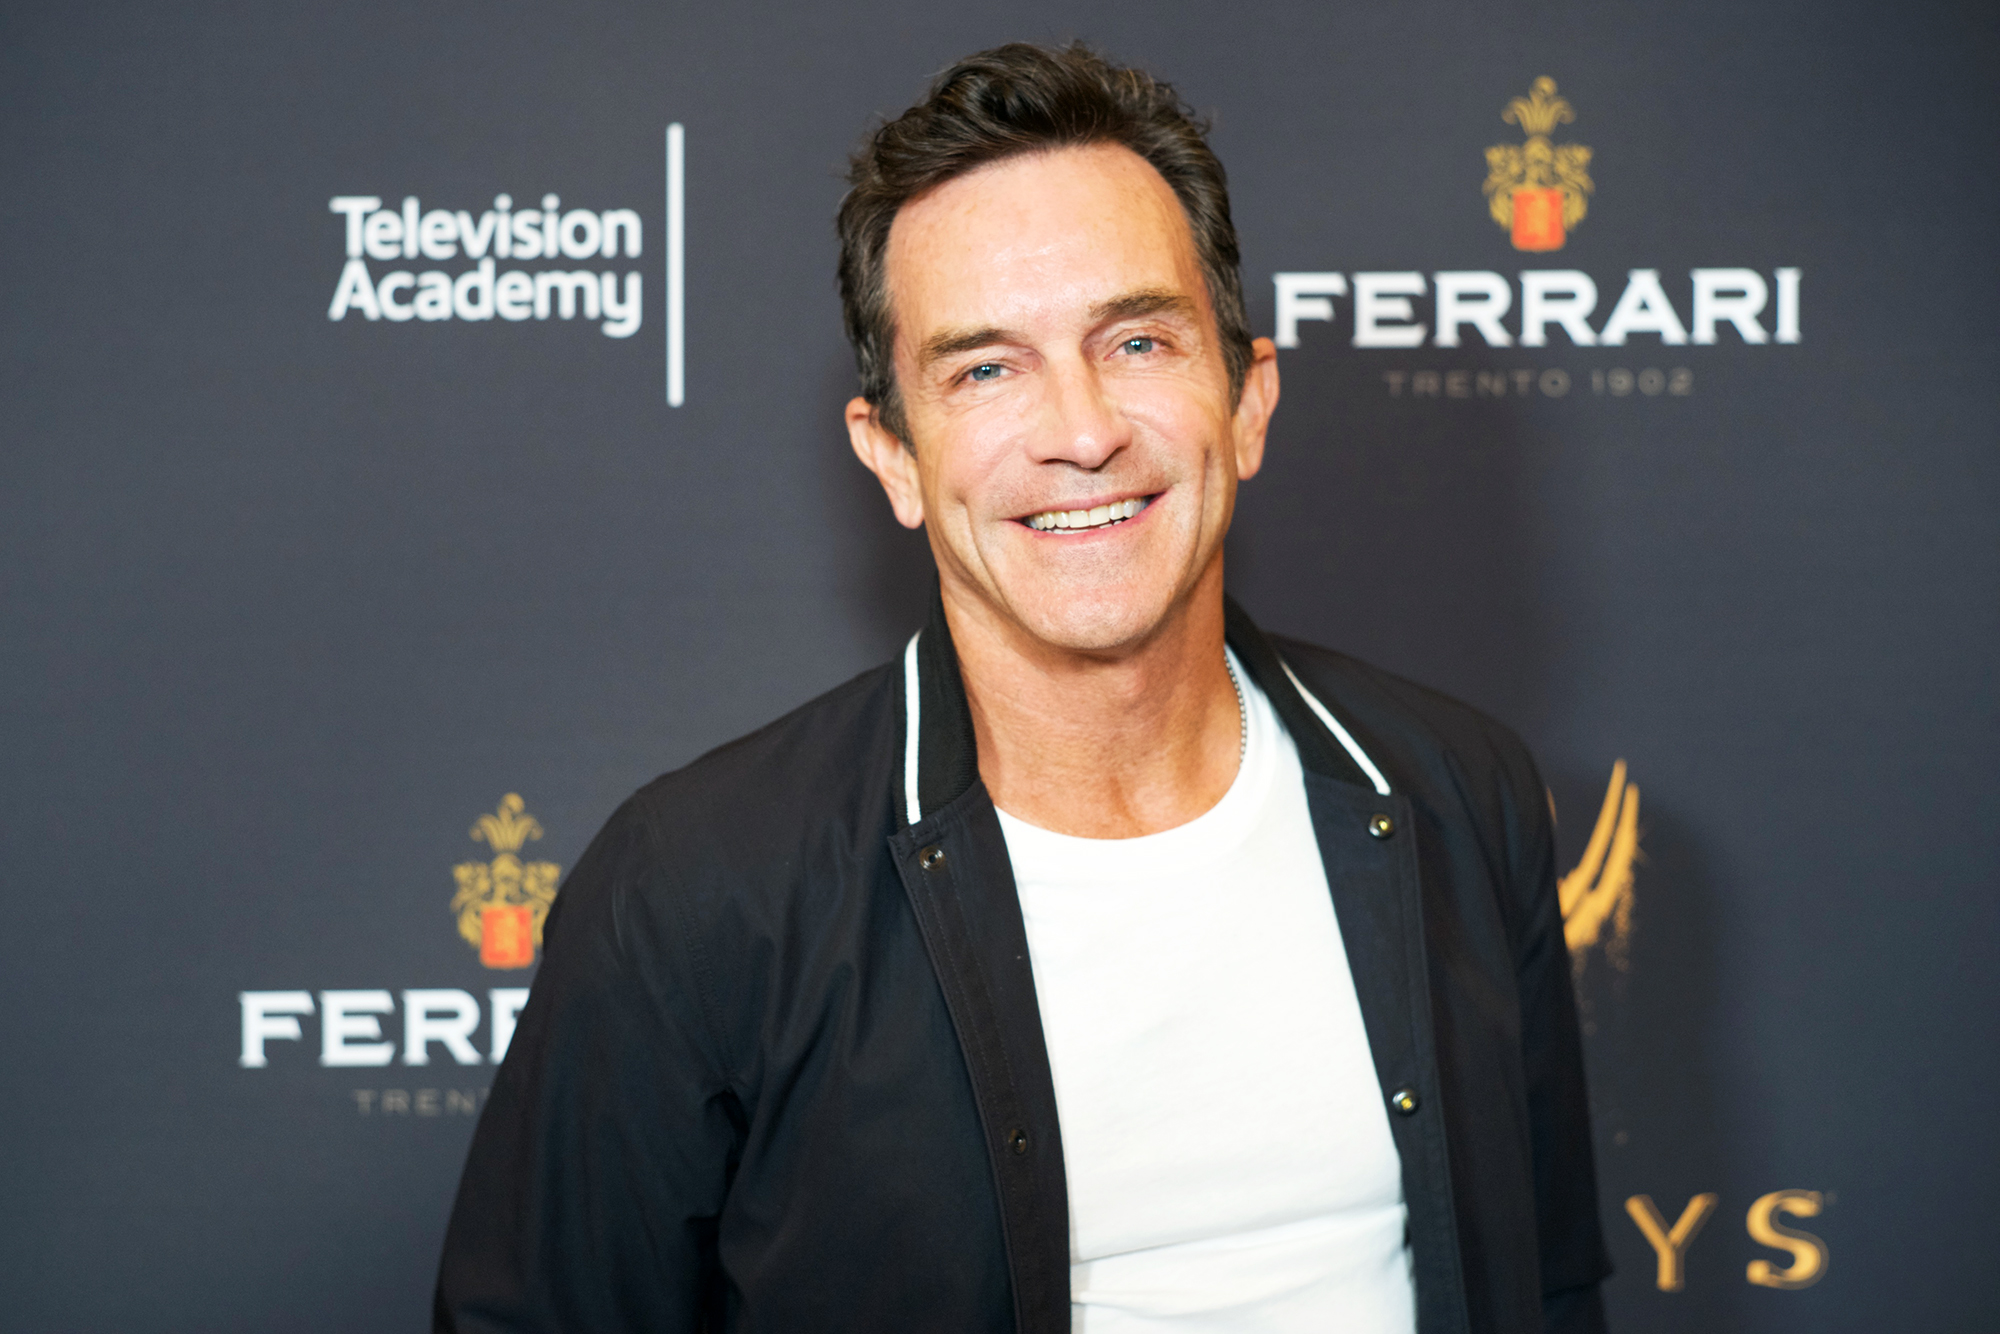 jeff-probst-naked-pictures